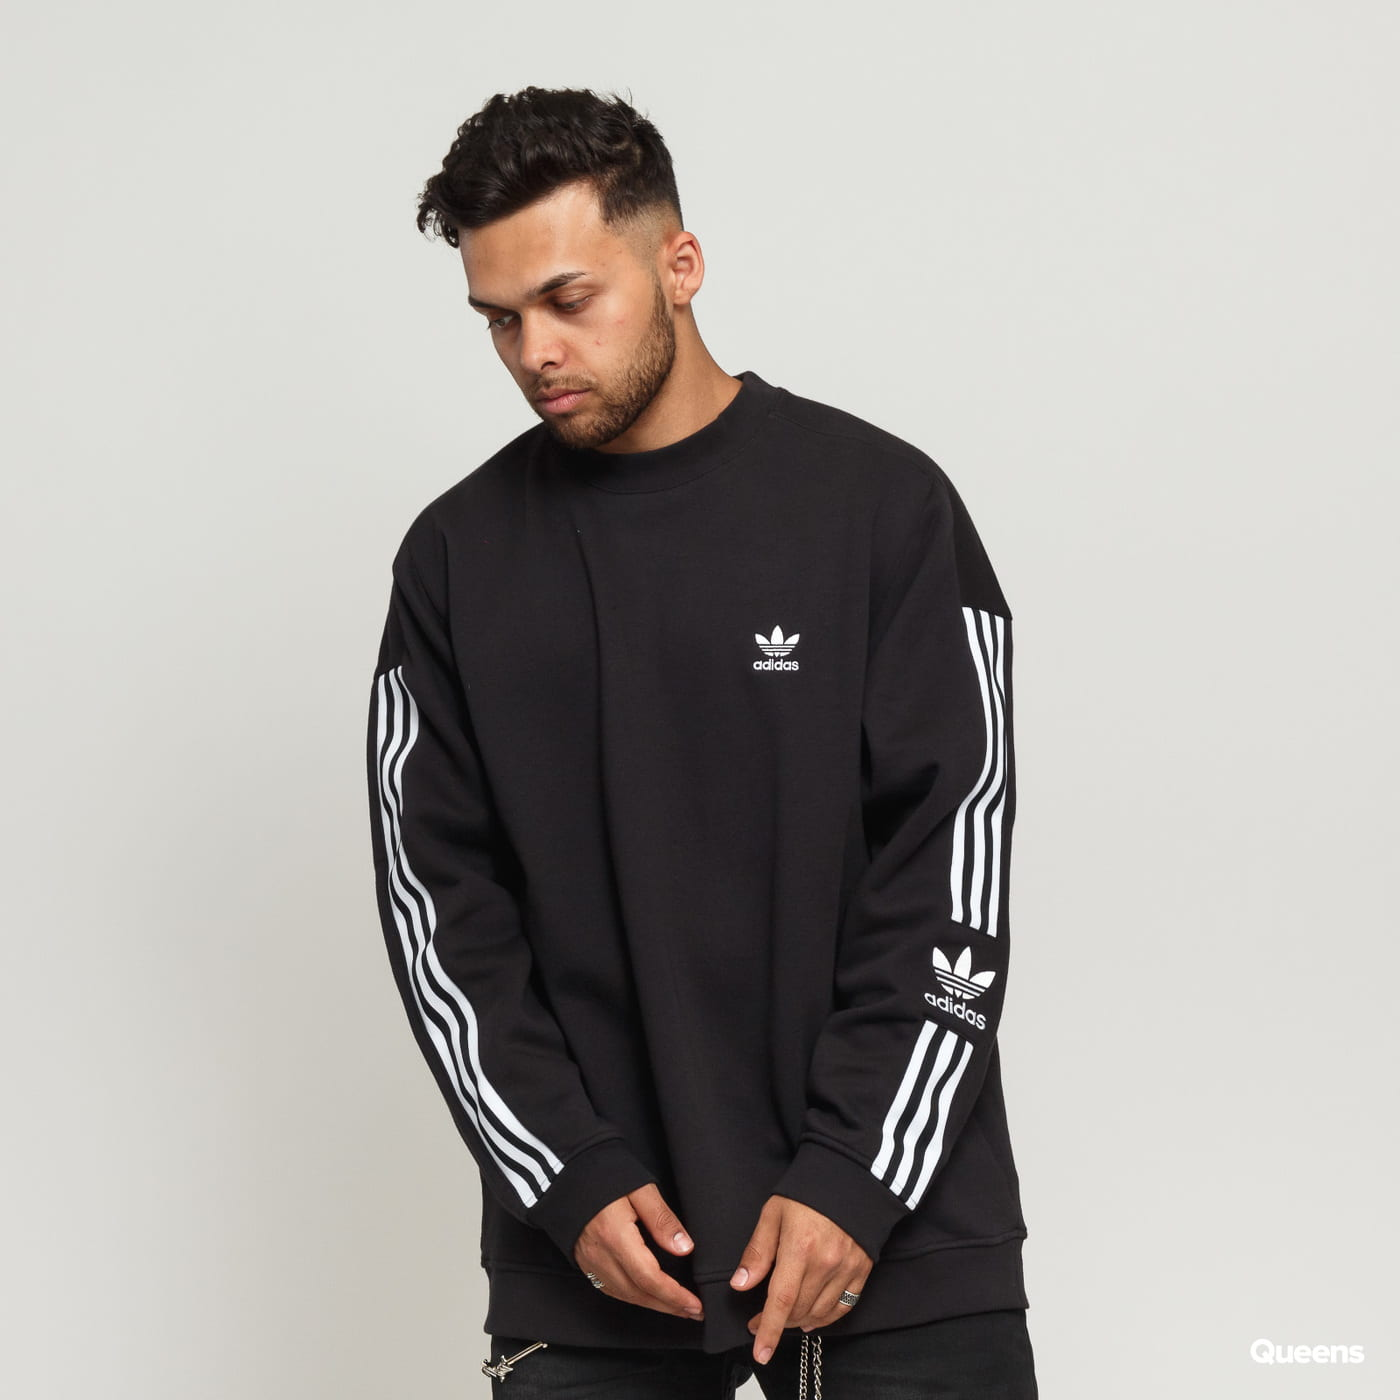 adidas tech crew sweatshirt